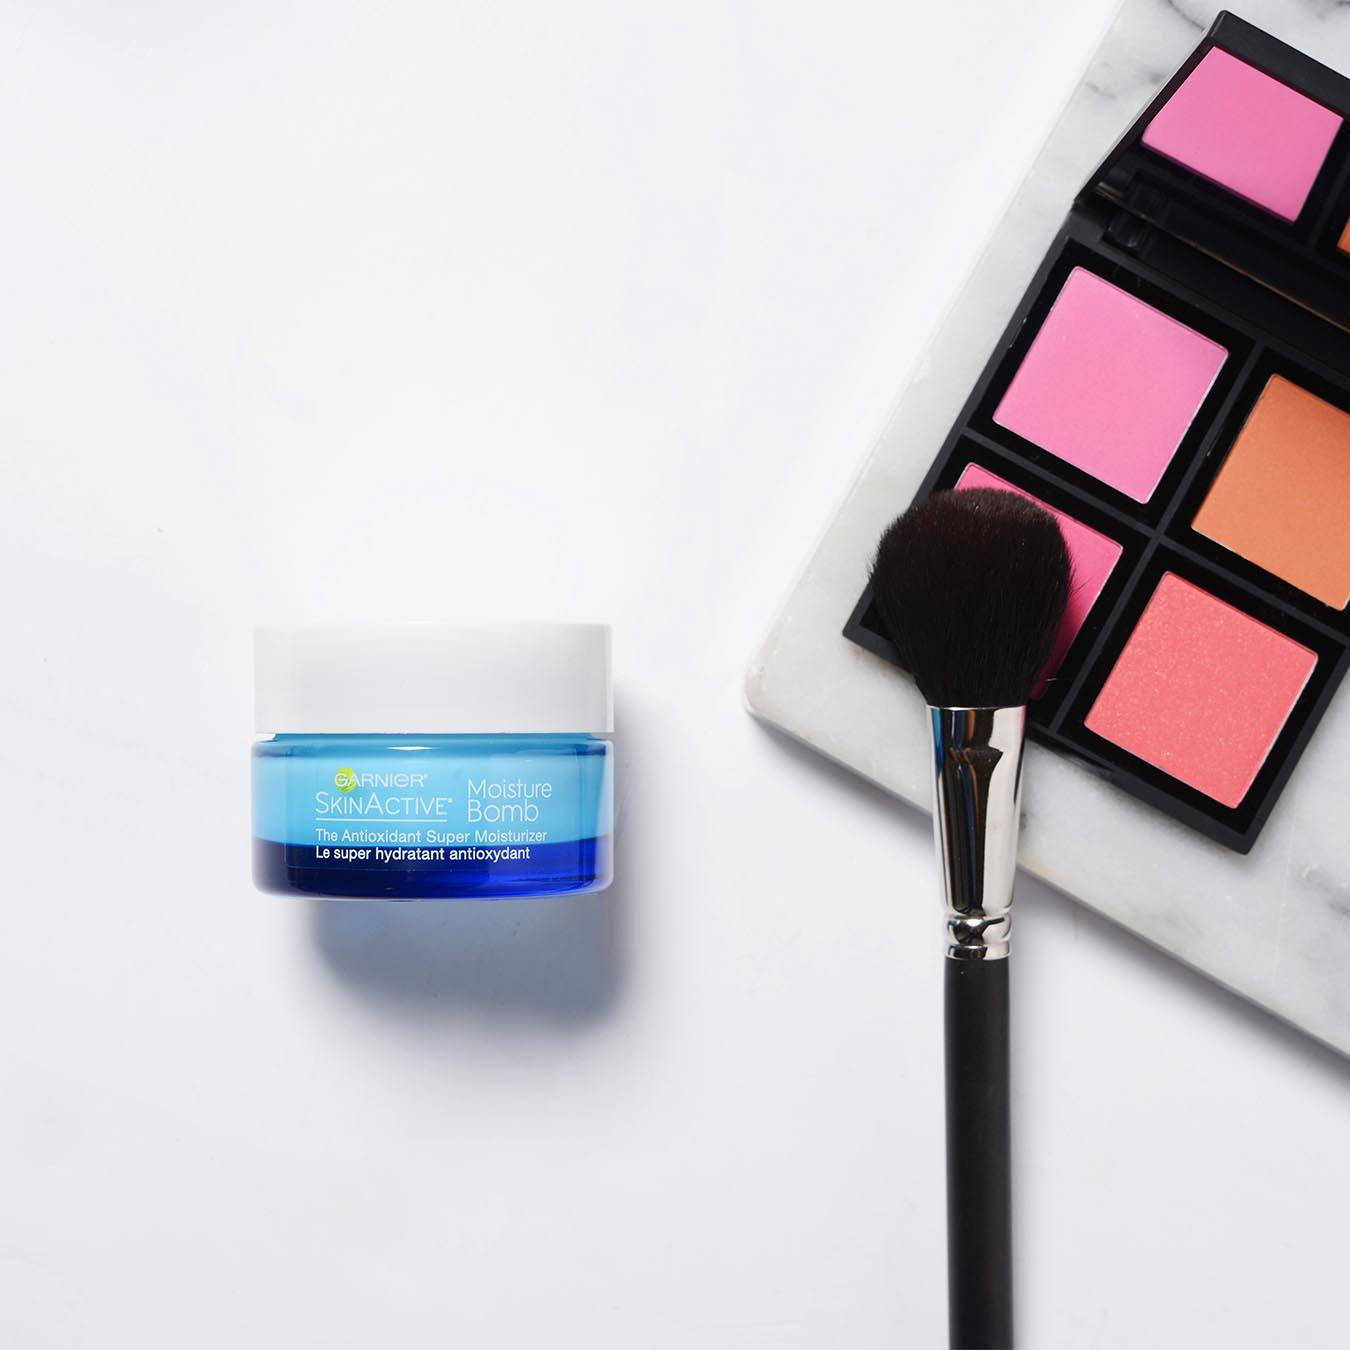 Garnier SkinActive Moisture Bomb The Super Antioxidant Super Moisturizer on a white background next to a palette of pink and orange blushes on a marble slab with a makeup brush.